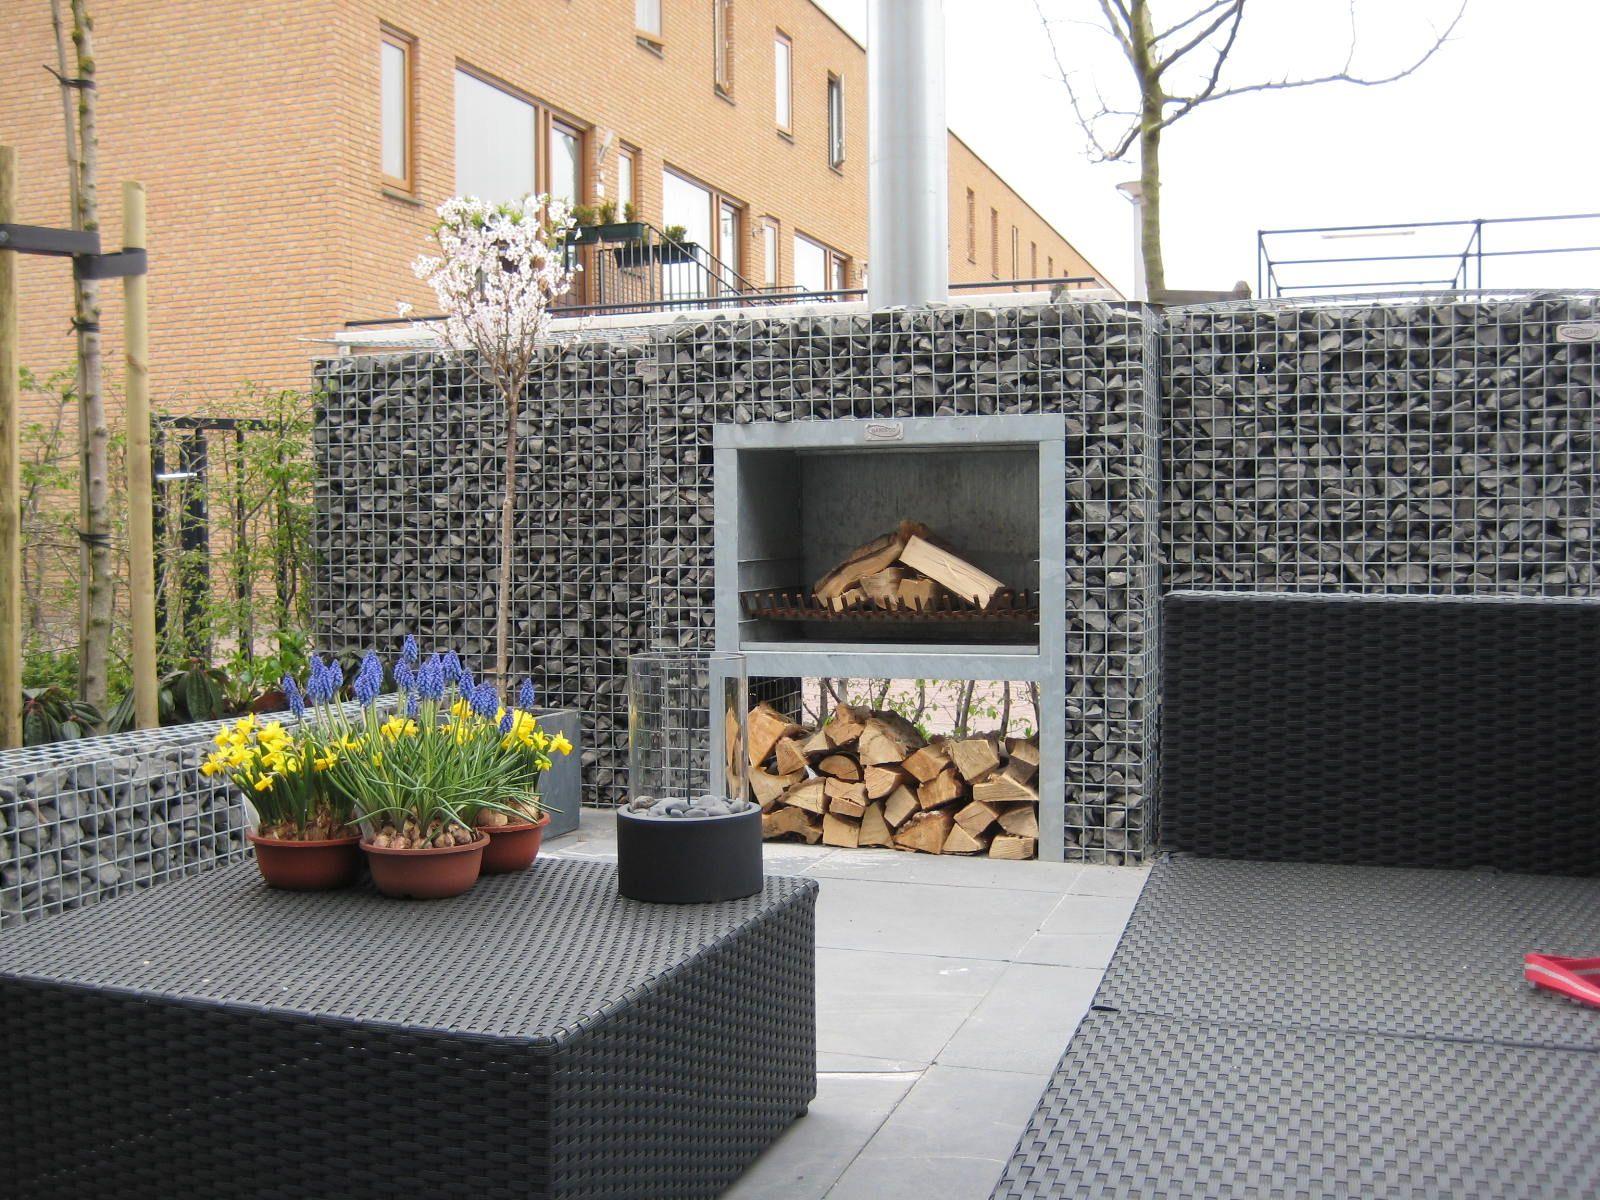 d63c4099254105638c8b02bdf7b981d7 Top Result 50 Awesome Modern Outdoor Fireplace Picture 2018 Gst3